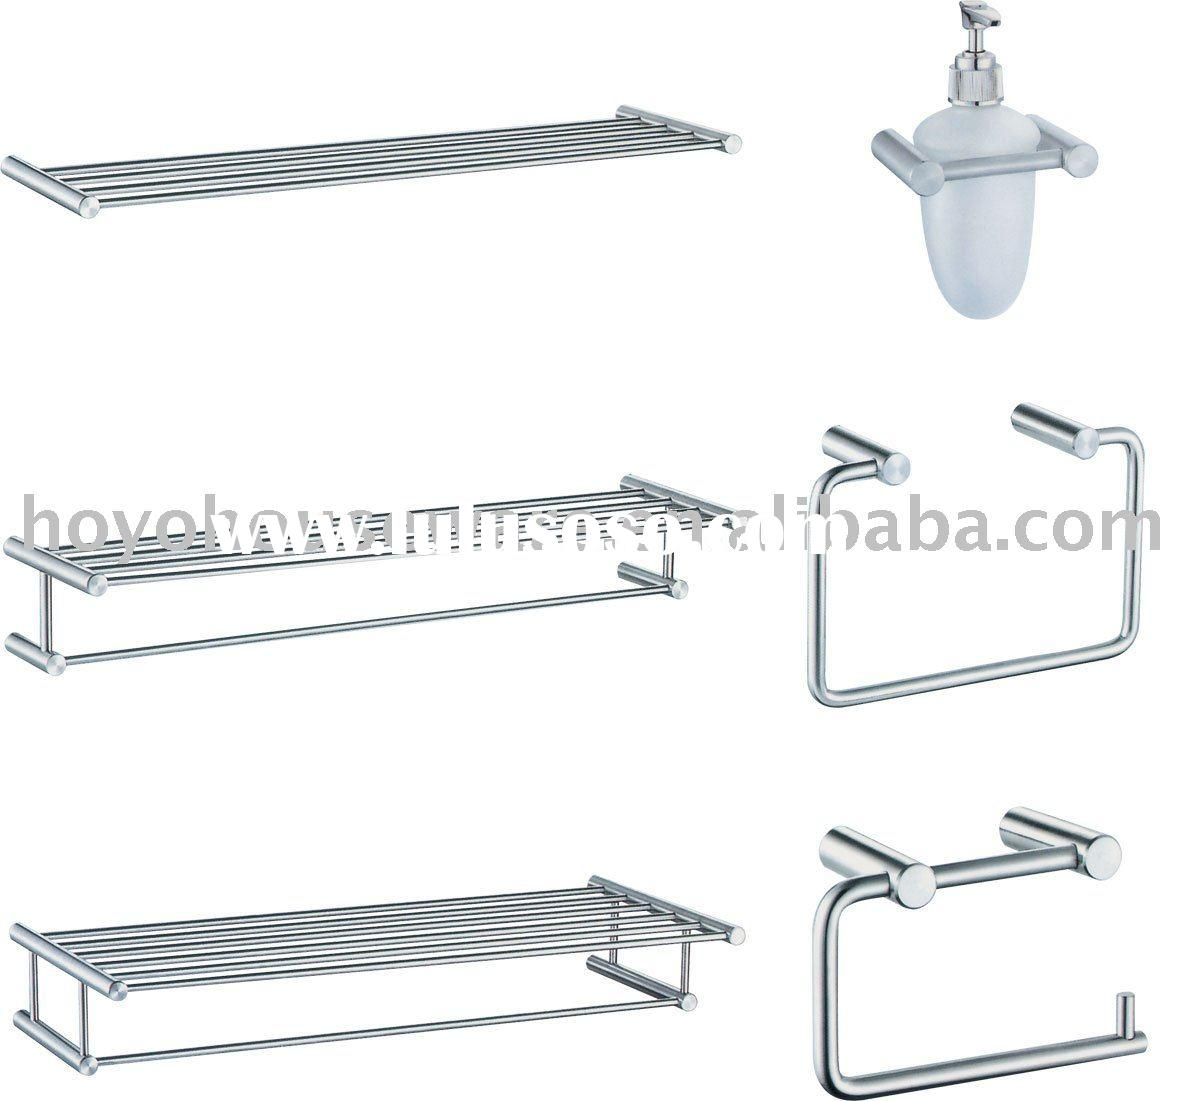 stainless steel rack,stainless steel shelf,frame,clothes rack,bathroom fitting,cloth rack,towel rack